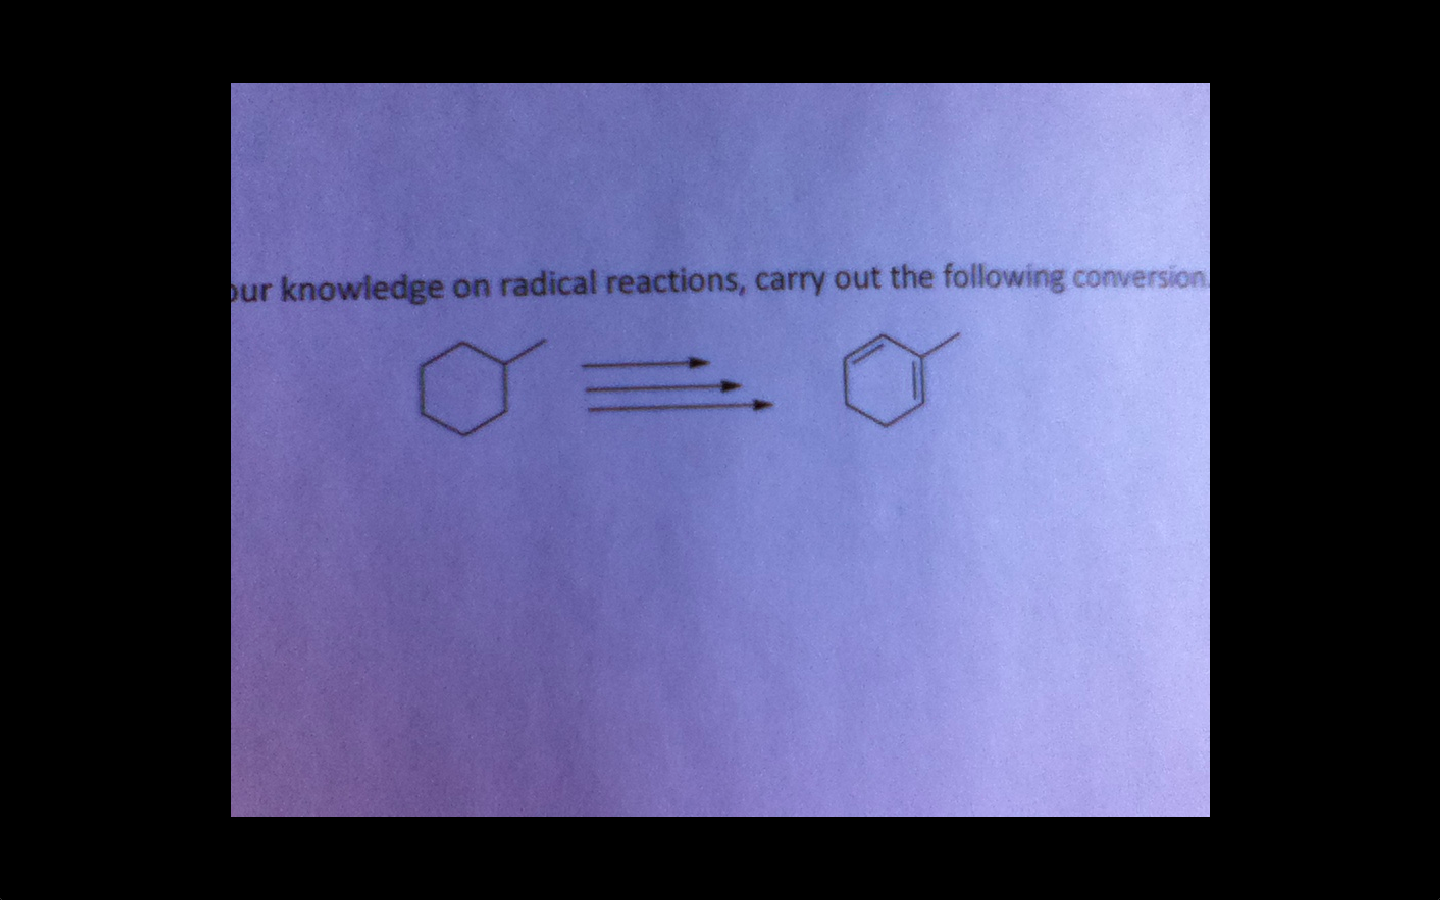 knowledge on radical reactions, carry out the fo